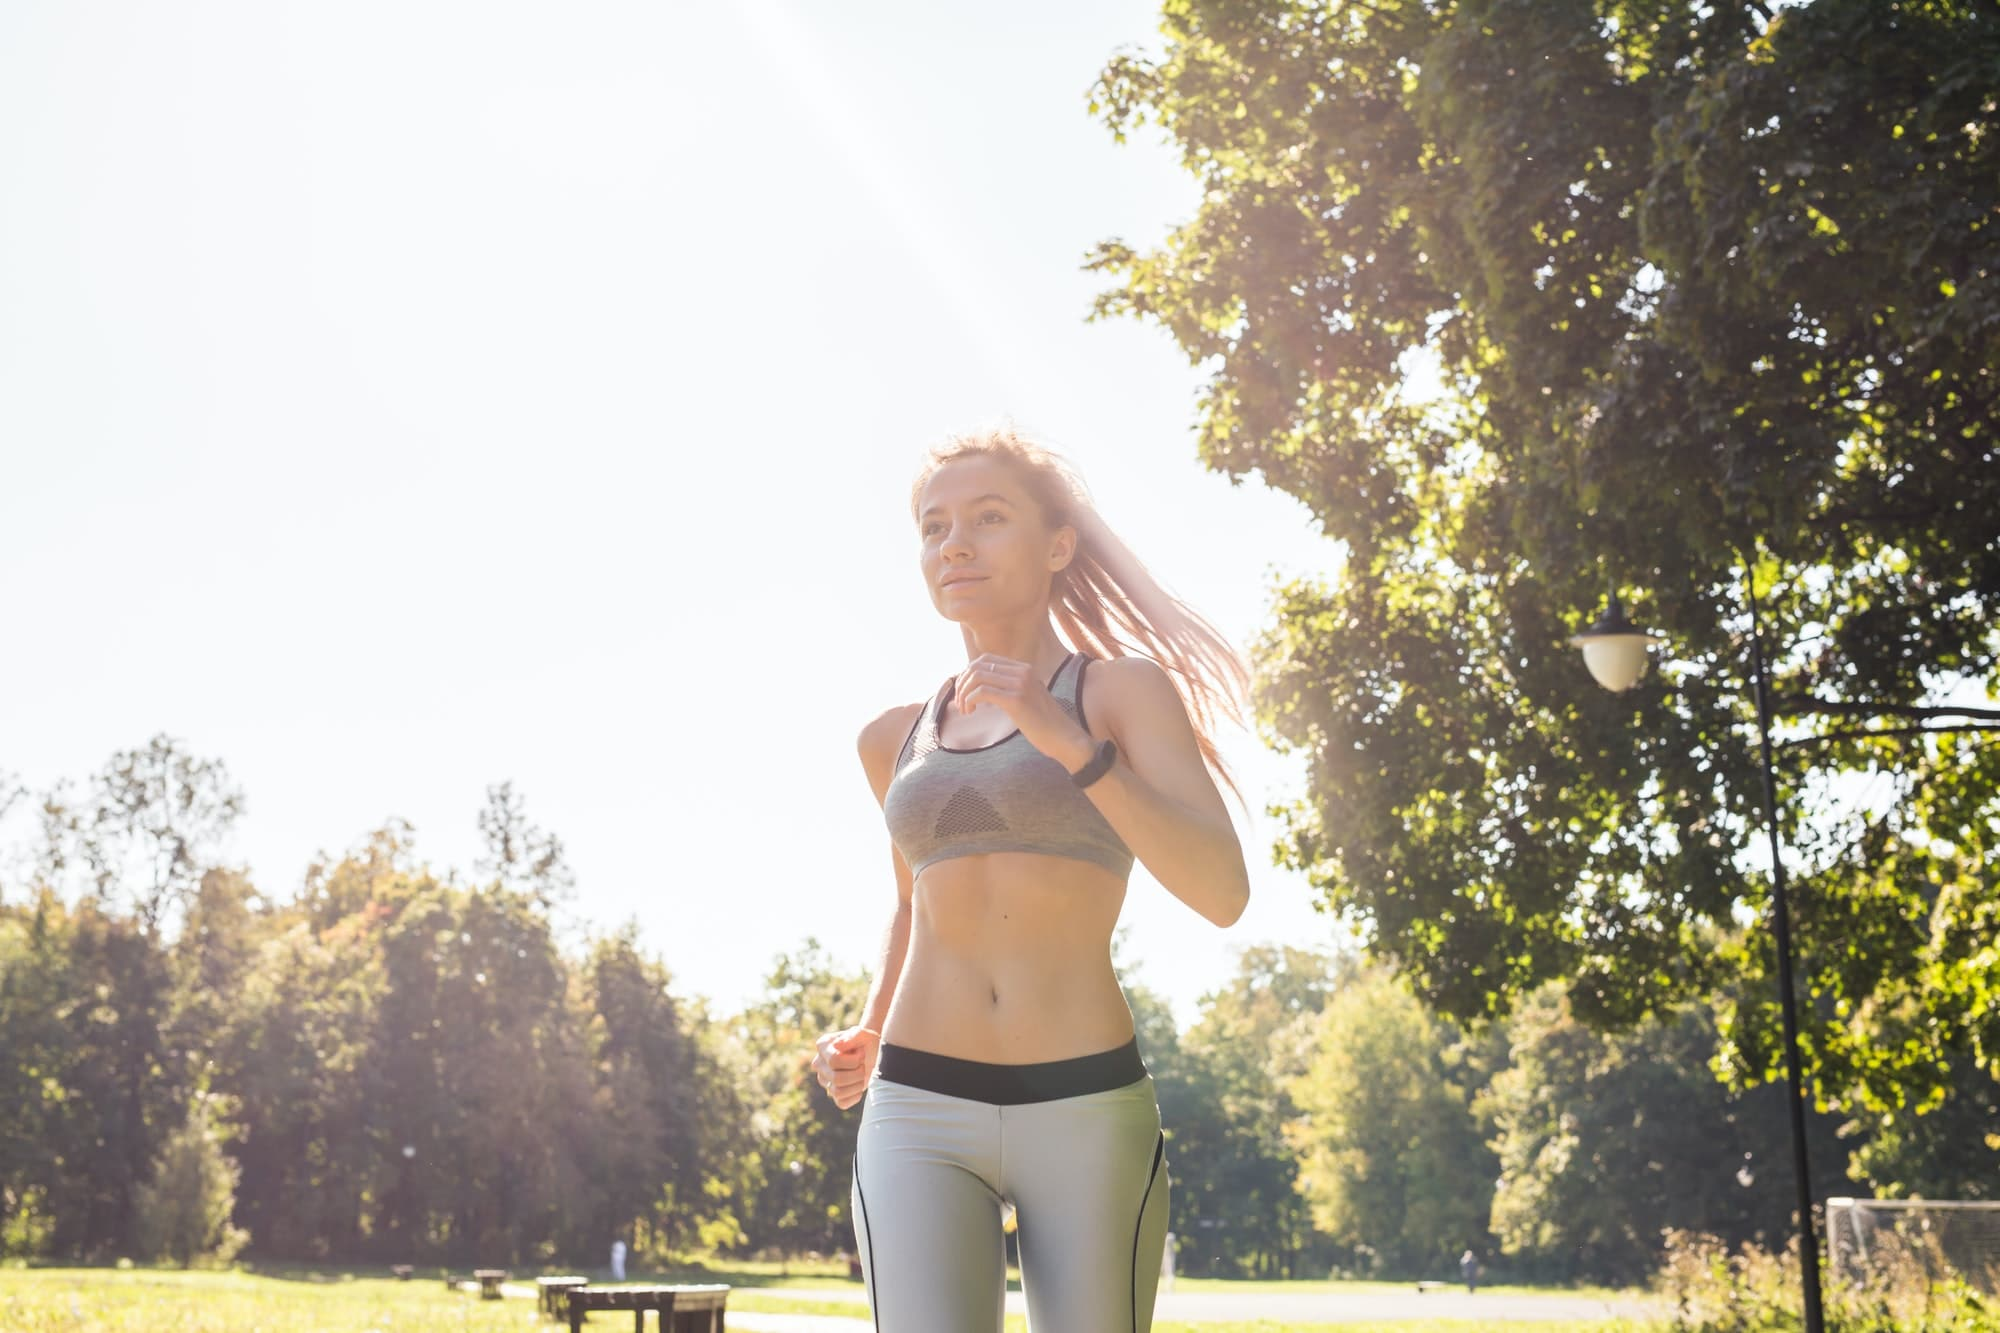 healthy lifestyle young fitness woman running outdoors